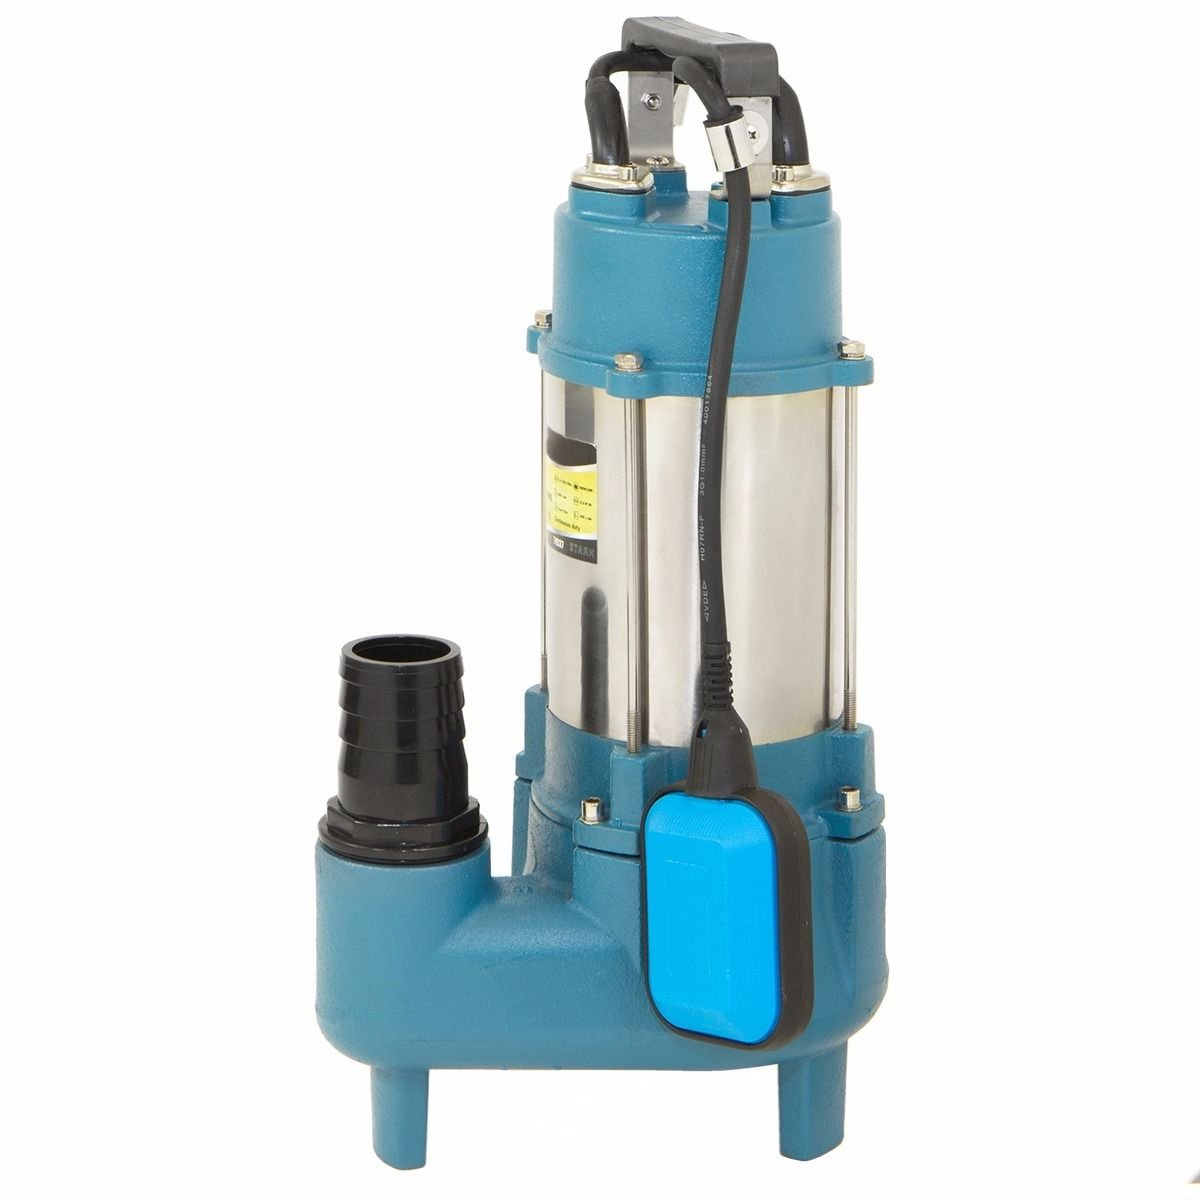 Eight24hours Submersible sewage pumps 1.5 hp sub pump 7128 GPH cast iron impeller 220v 60hz with Special Gift Alarm Clock Radio Digital